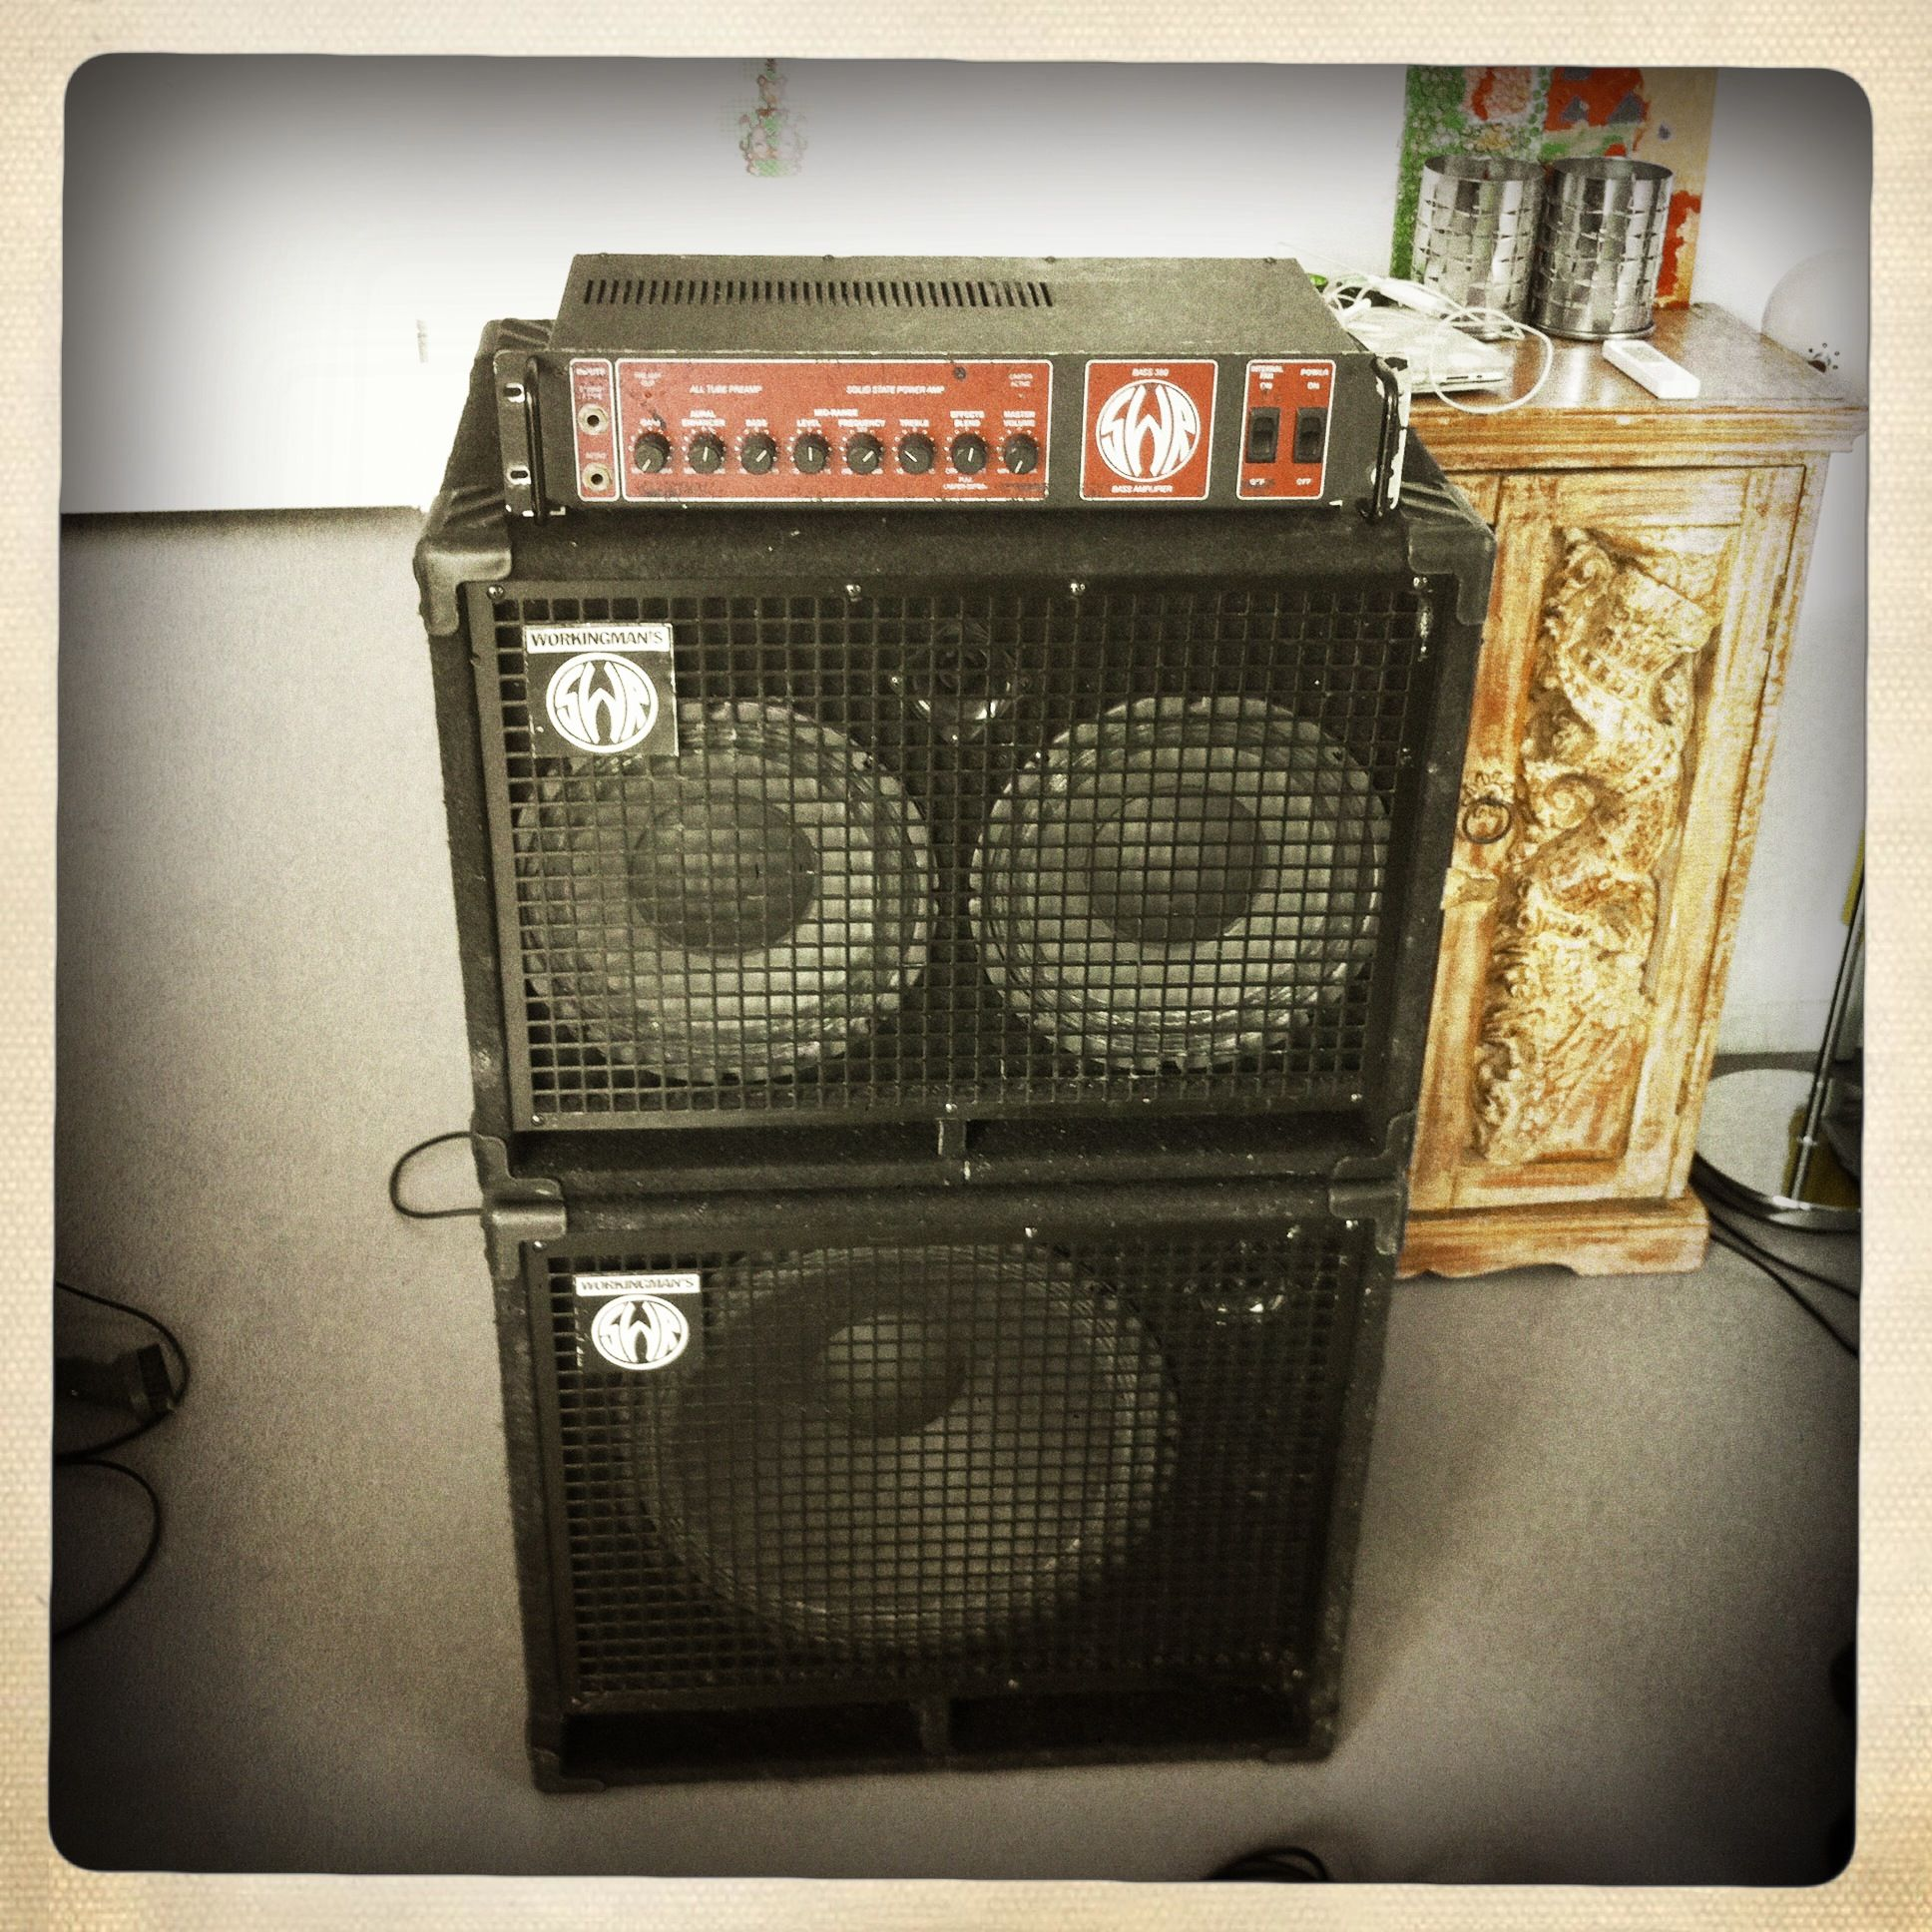 Head Swr Bass 350 Speaker Cabinets Swr Workingman S Series 2 X 10 1 X 15 All Combined Together Also Known As Das Erdbebe Bass Amps Cars Music Speaker Cab